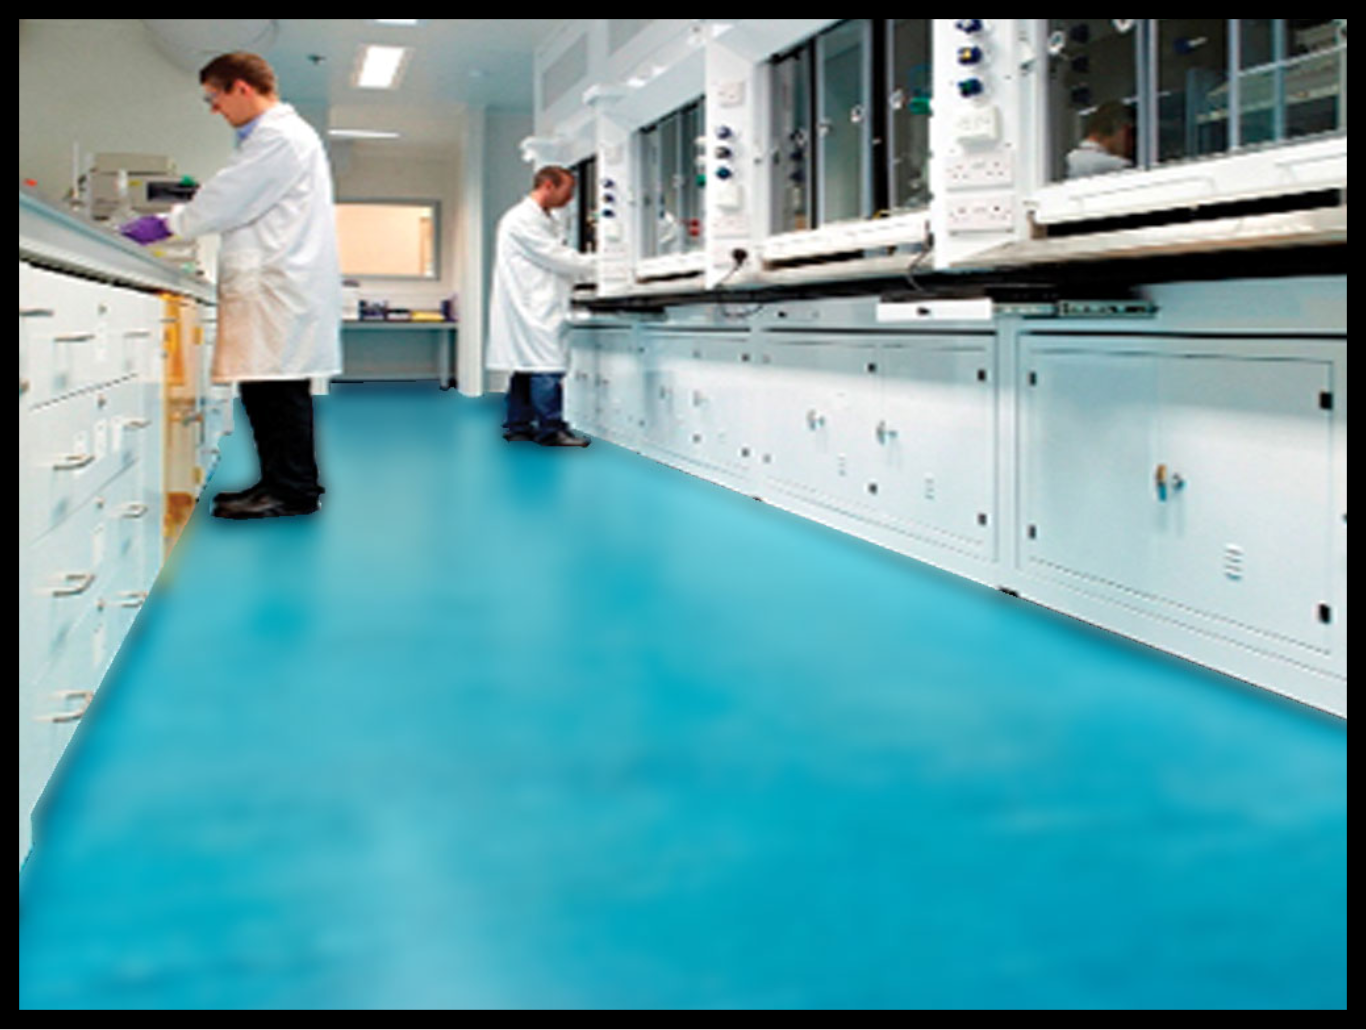 coating epoxy n inspiraci leveling duty medium flooring self pin floor lab